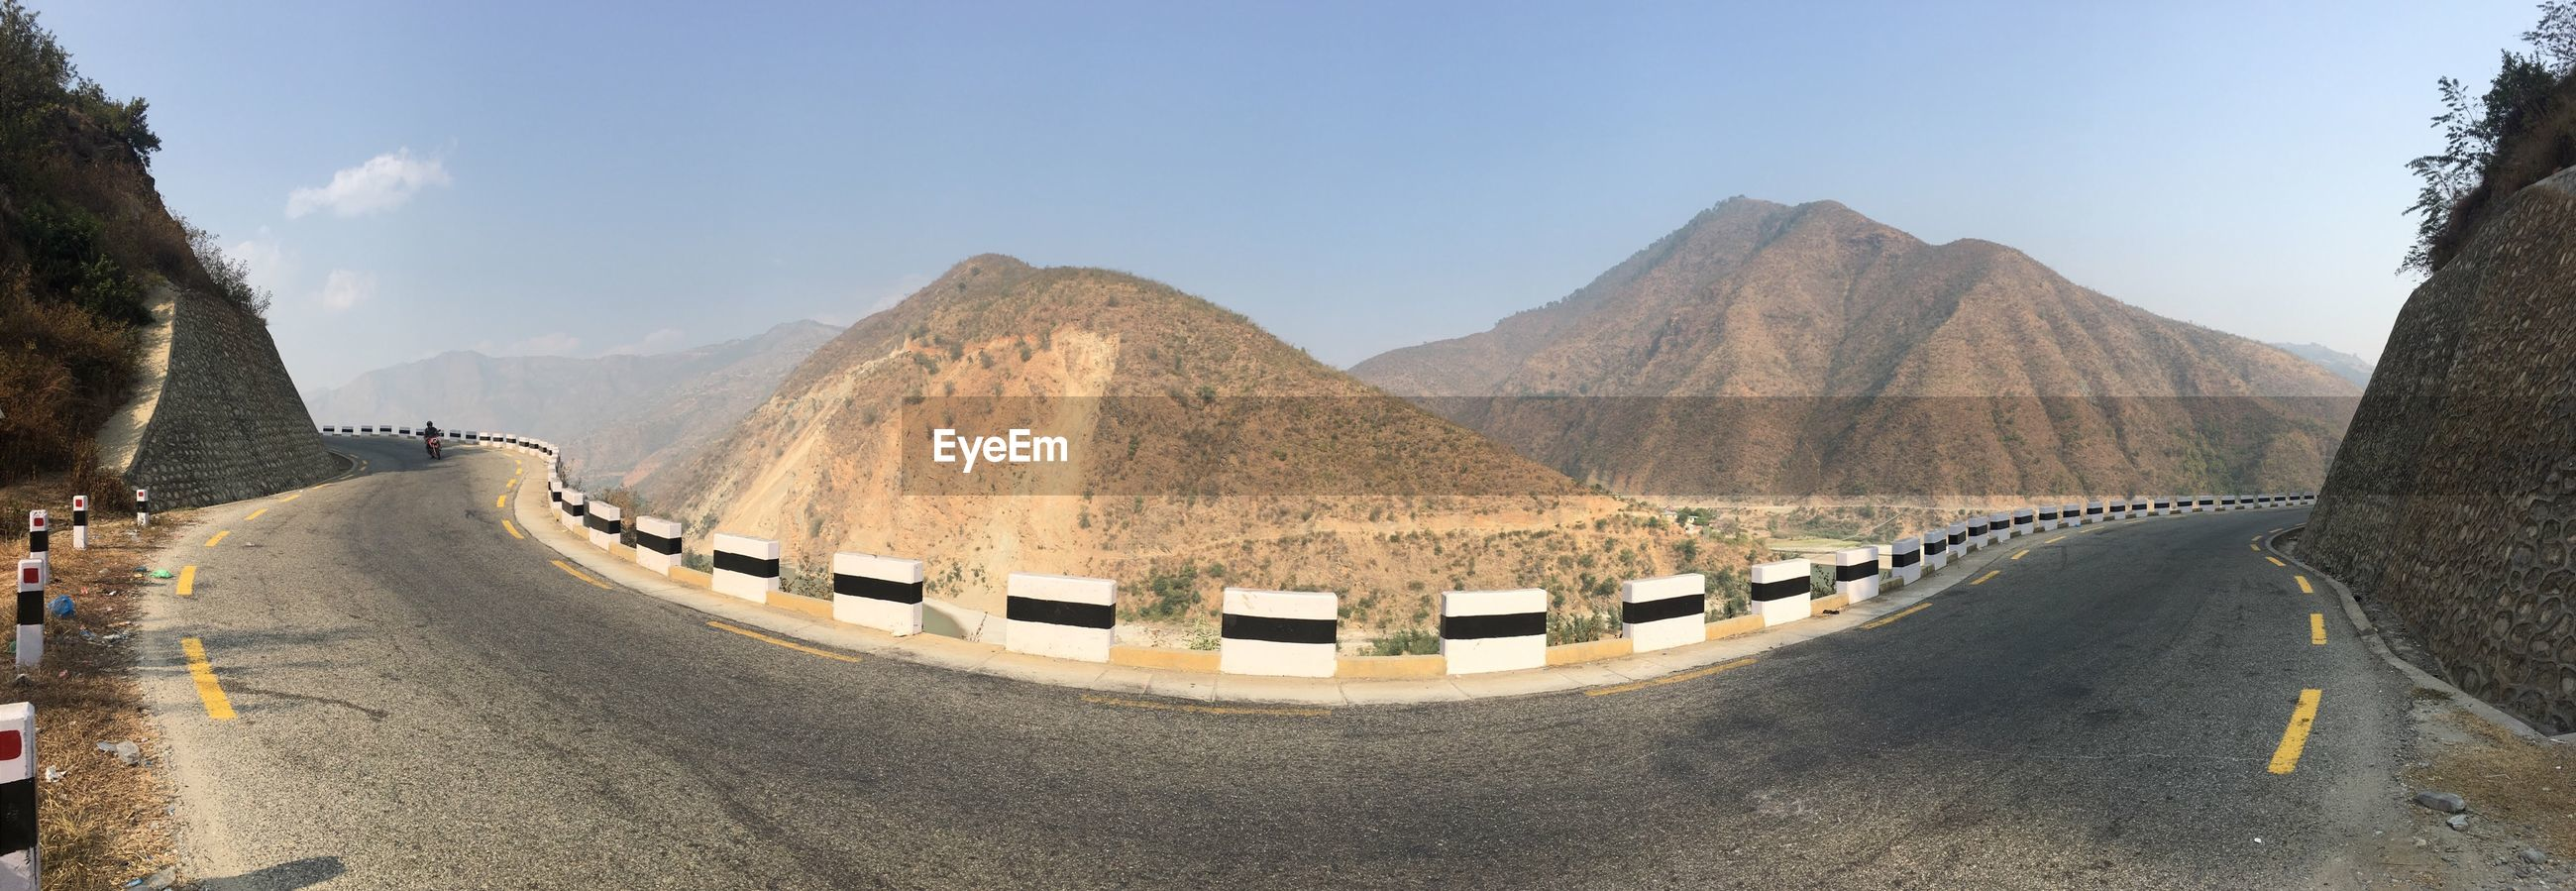 PANORAMIC VIEW OF ROAD LEADING TOWARDS MOUNTAIN